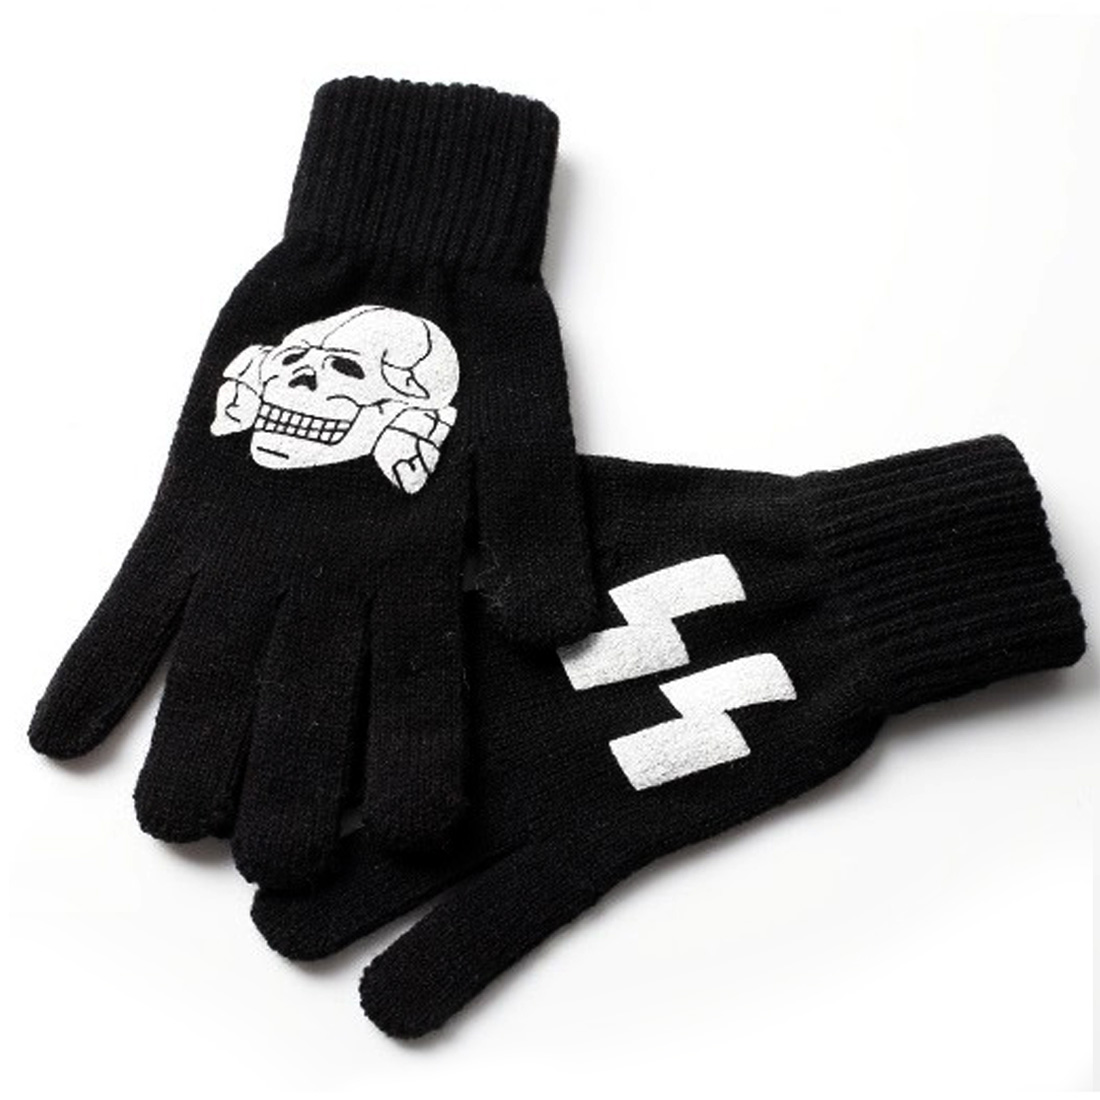 Men Skull Pattern Hand Warmer Black Knitted Gloves Pair